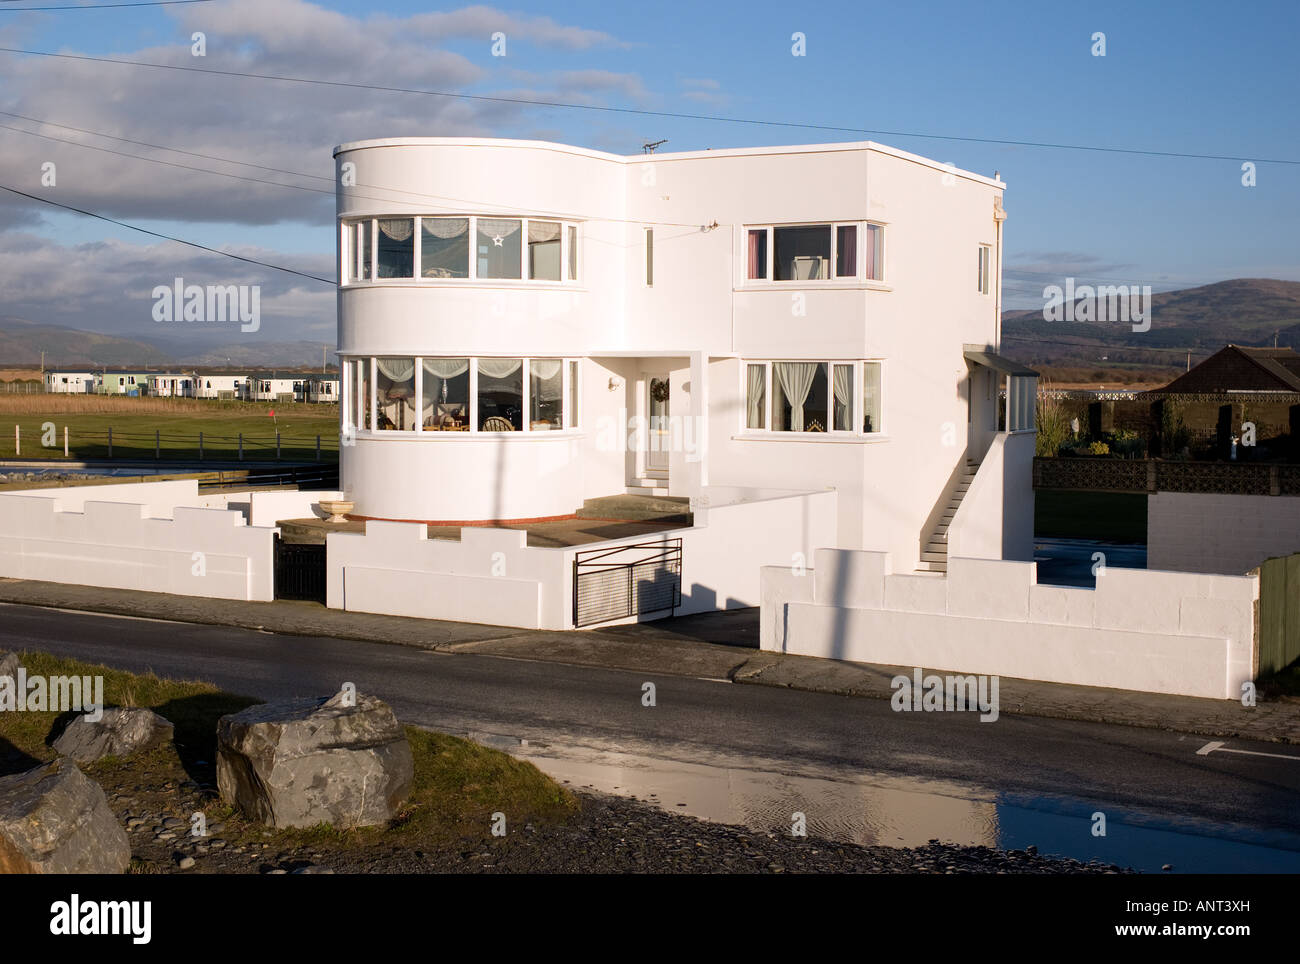 1930 39 s seaside modern architecture style white house for Architecture 1930